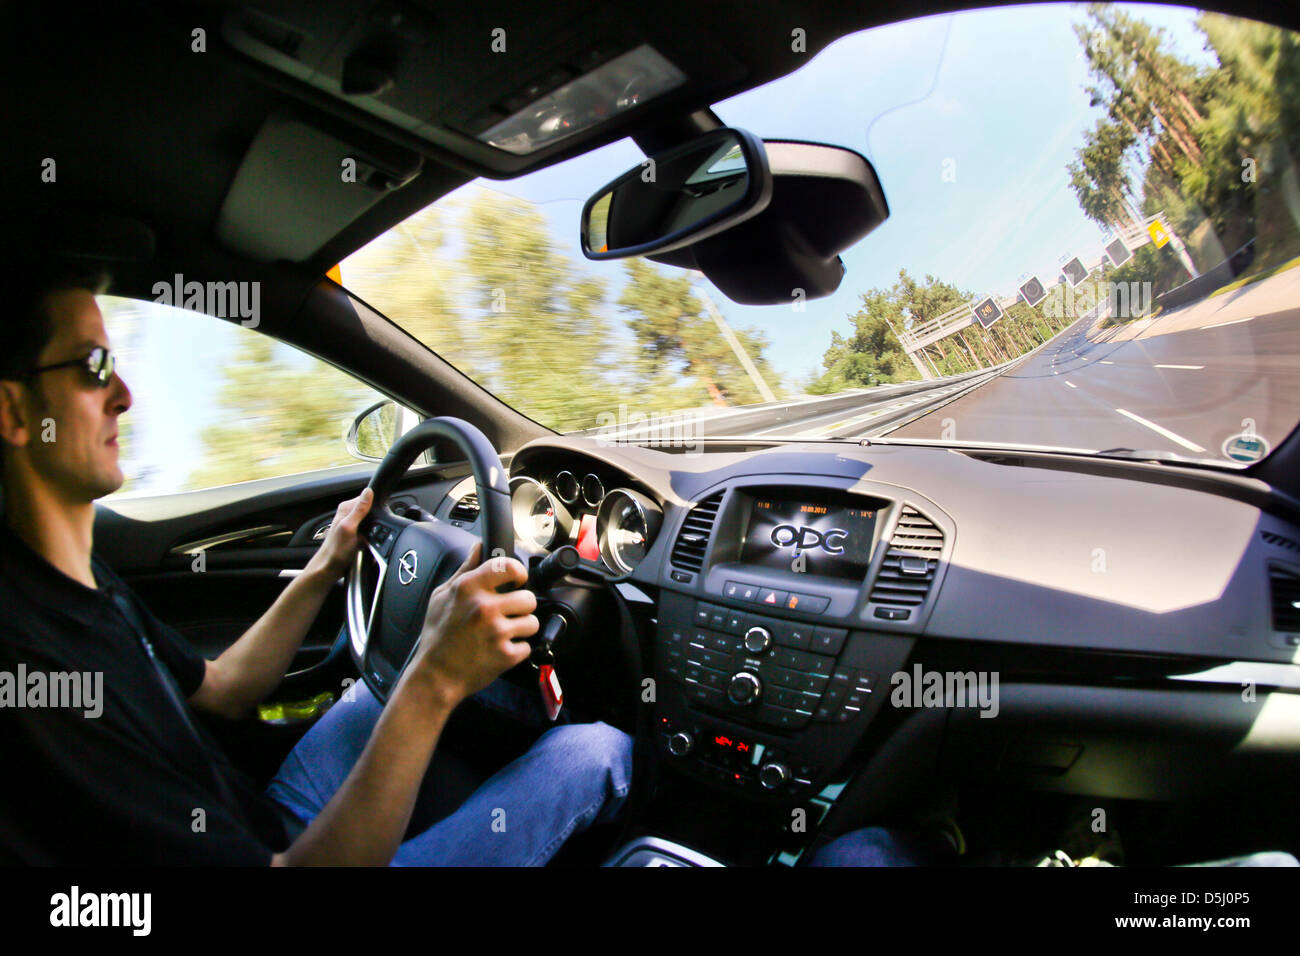 a test driver races an opel insignia opc through a 40. Black Bedroom Furniture Sets. Home Design Ideas